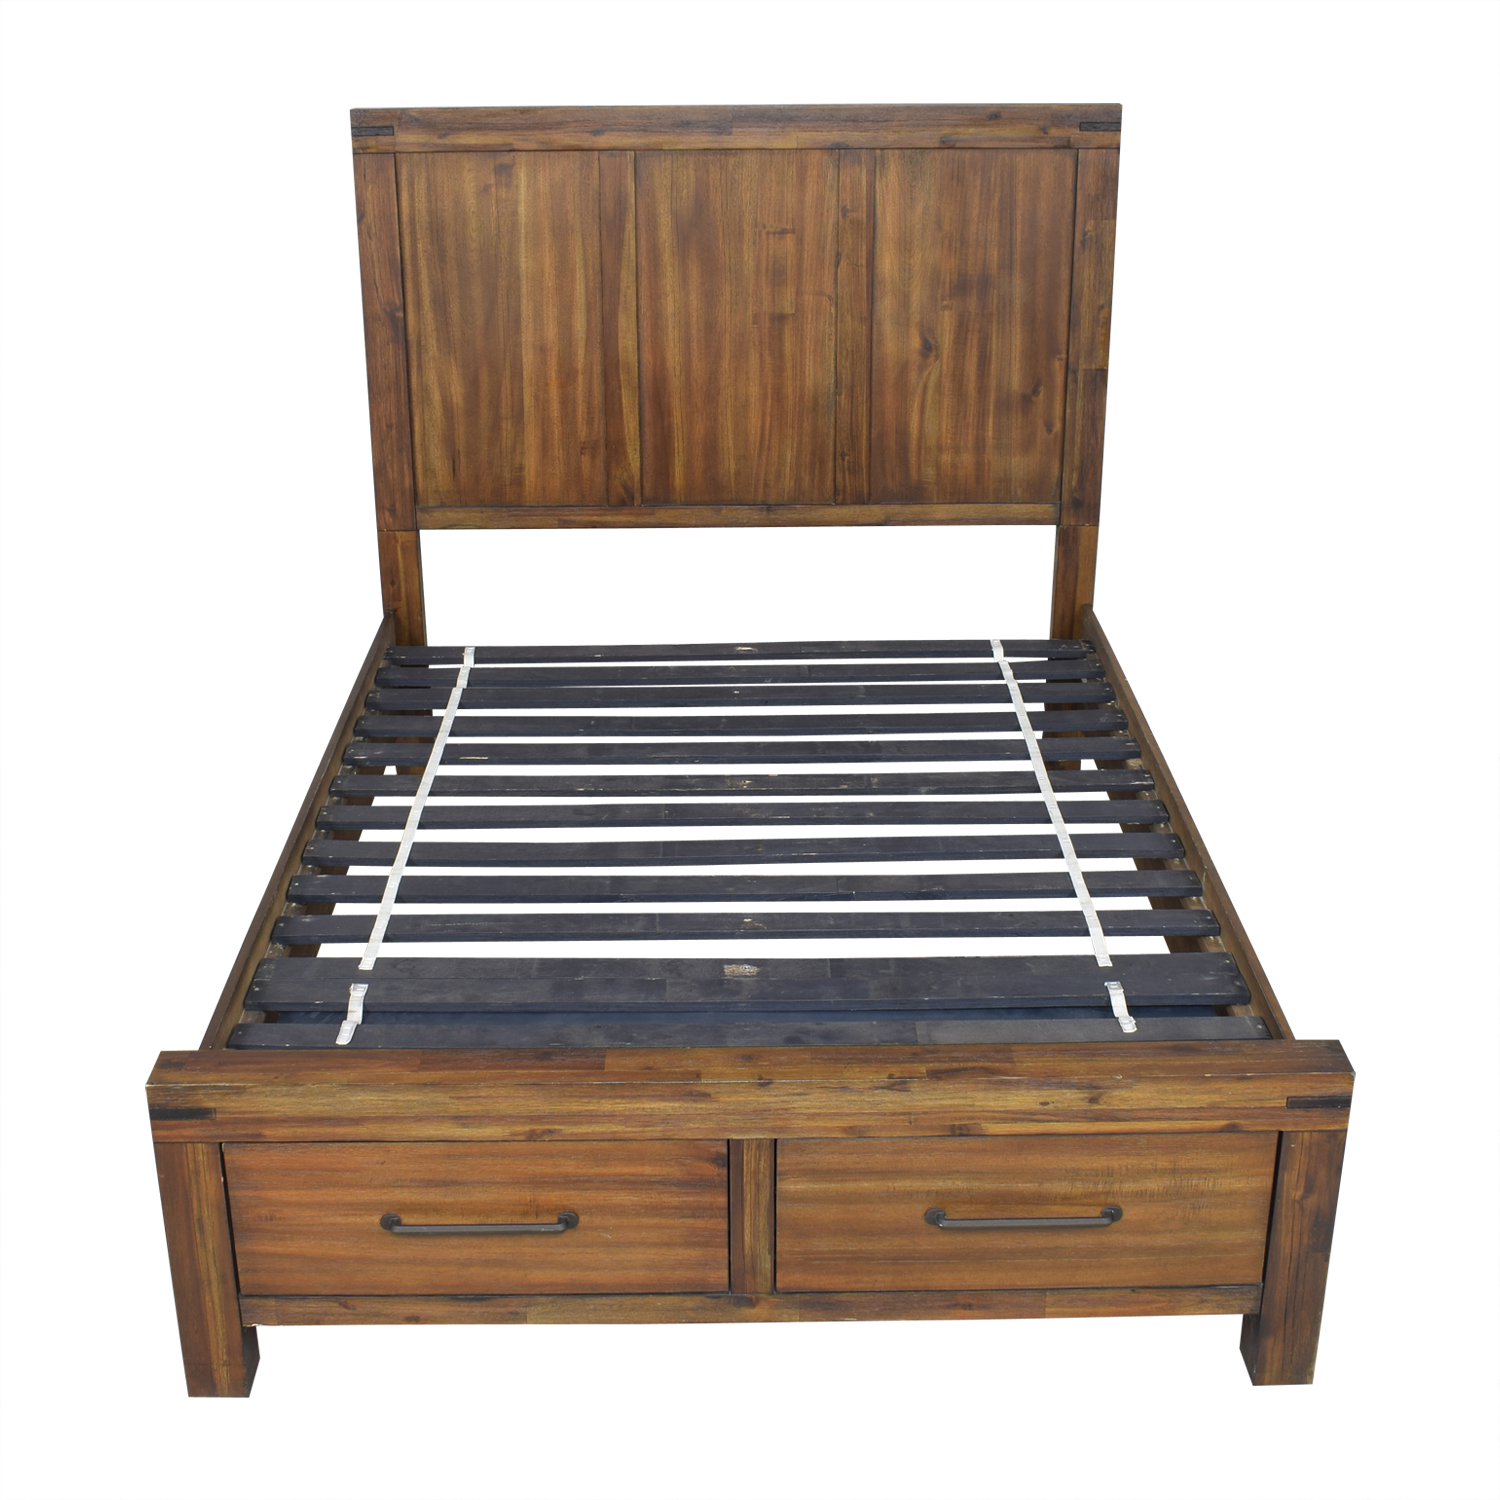 shop Raymour & Flanigan Gannon Storage Queen Bed Raymour & Flanigan Bed Frames